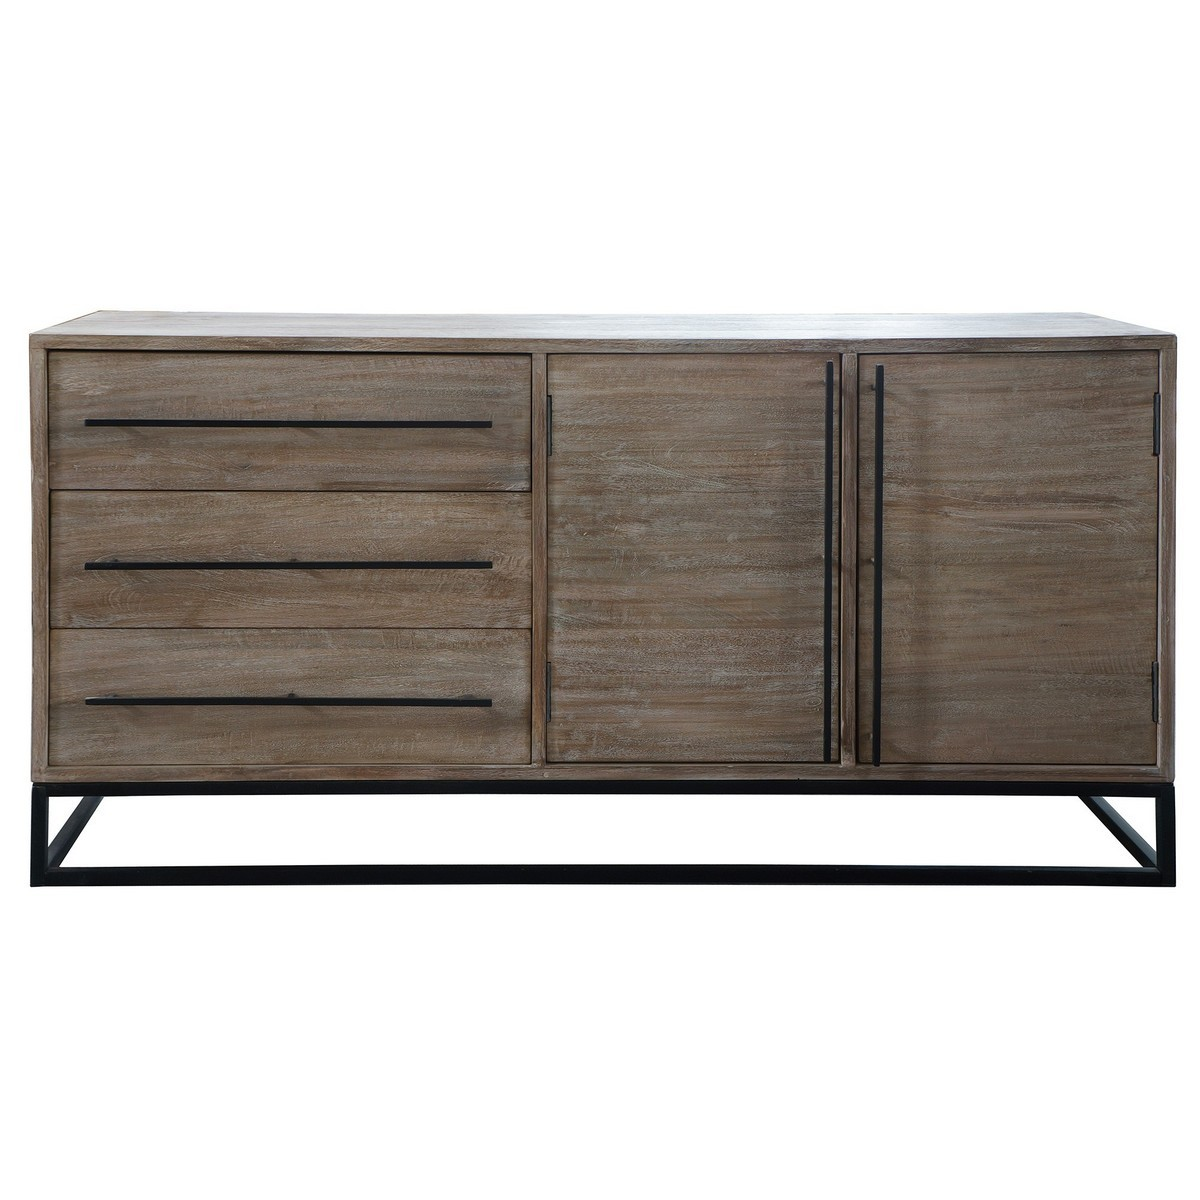 Pontons Mango Wood 2 Door 3 Drawer Sideboard, 160cm